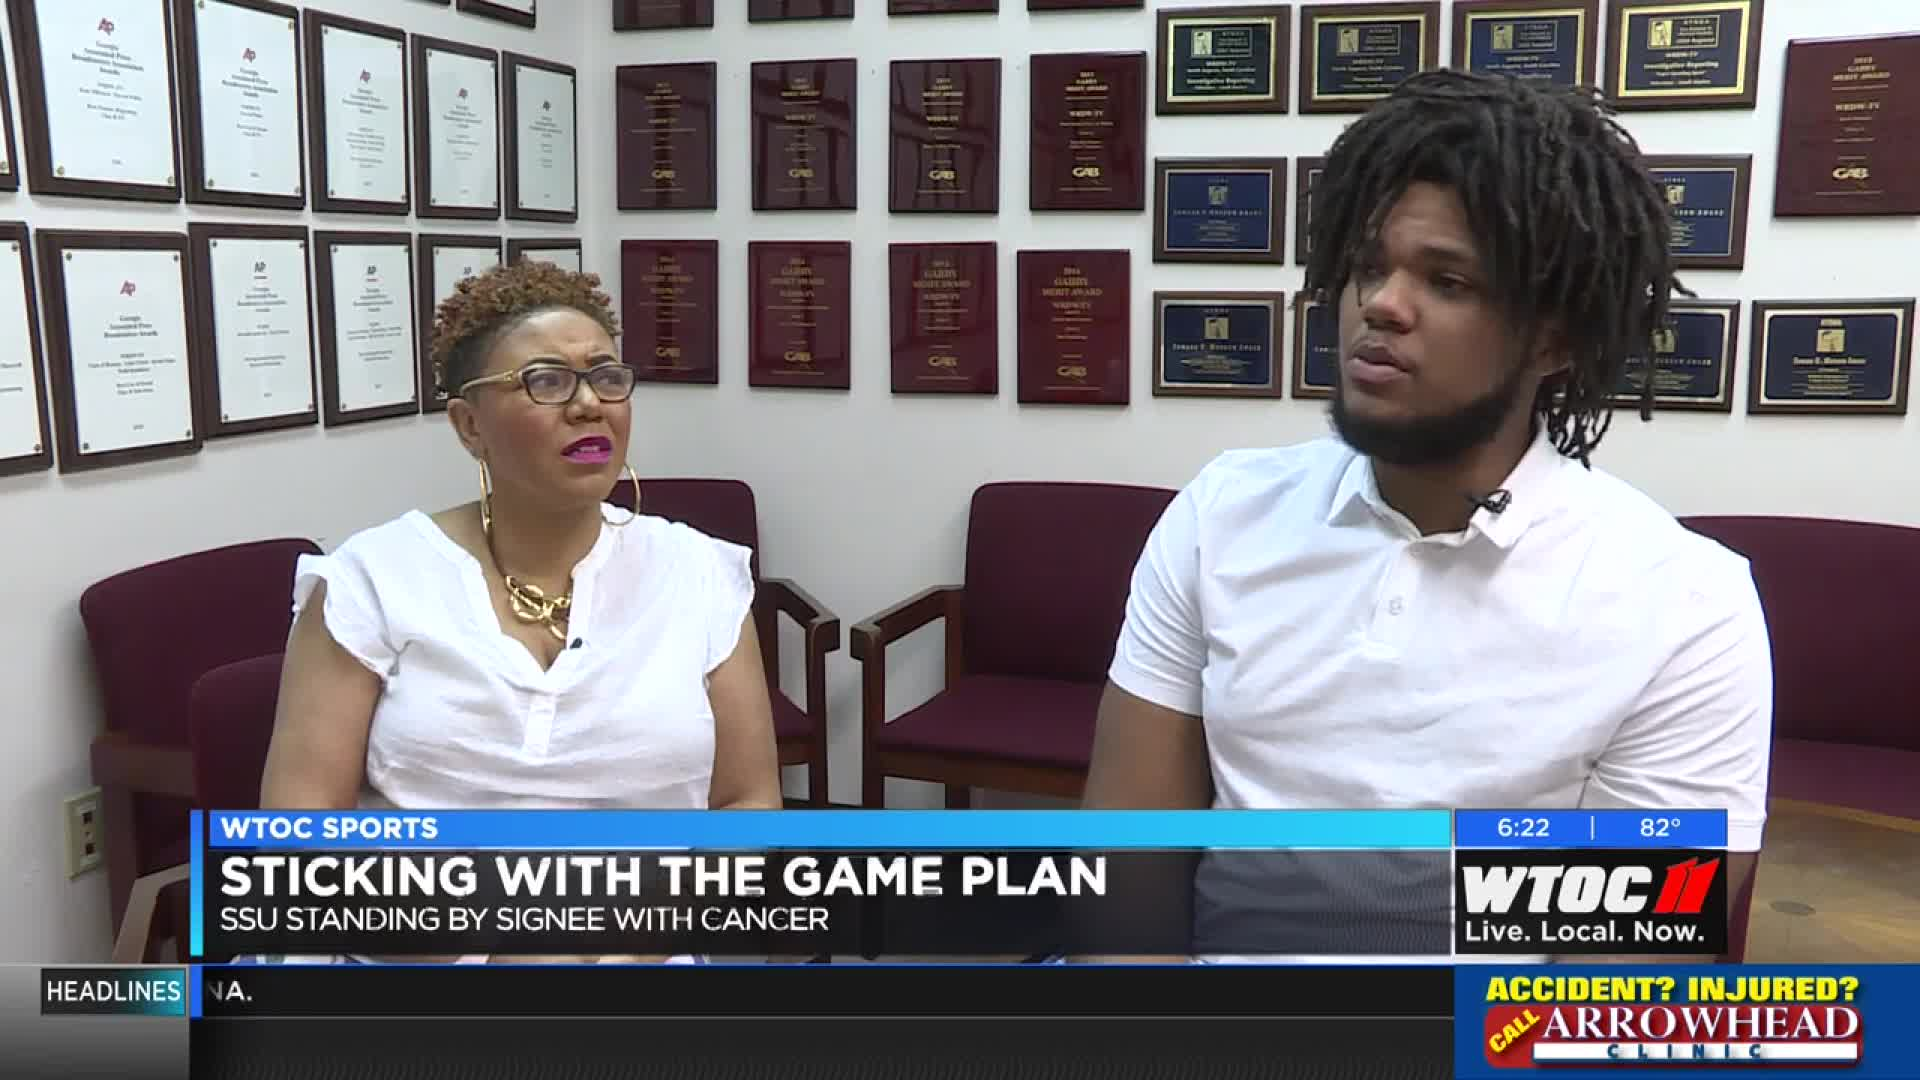 Stand by your man: SSU sticking with football signee fighting cancer